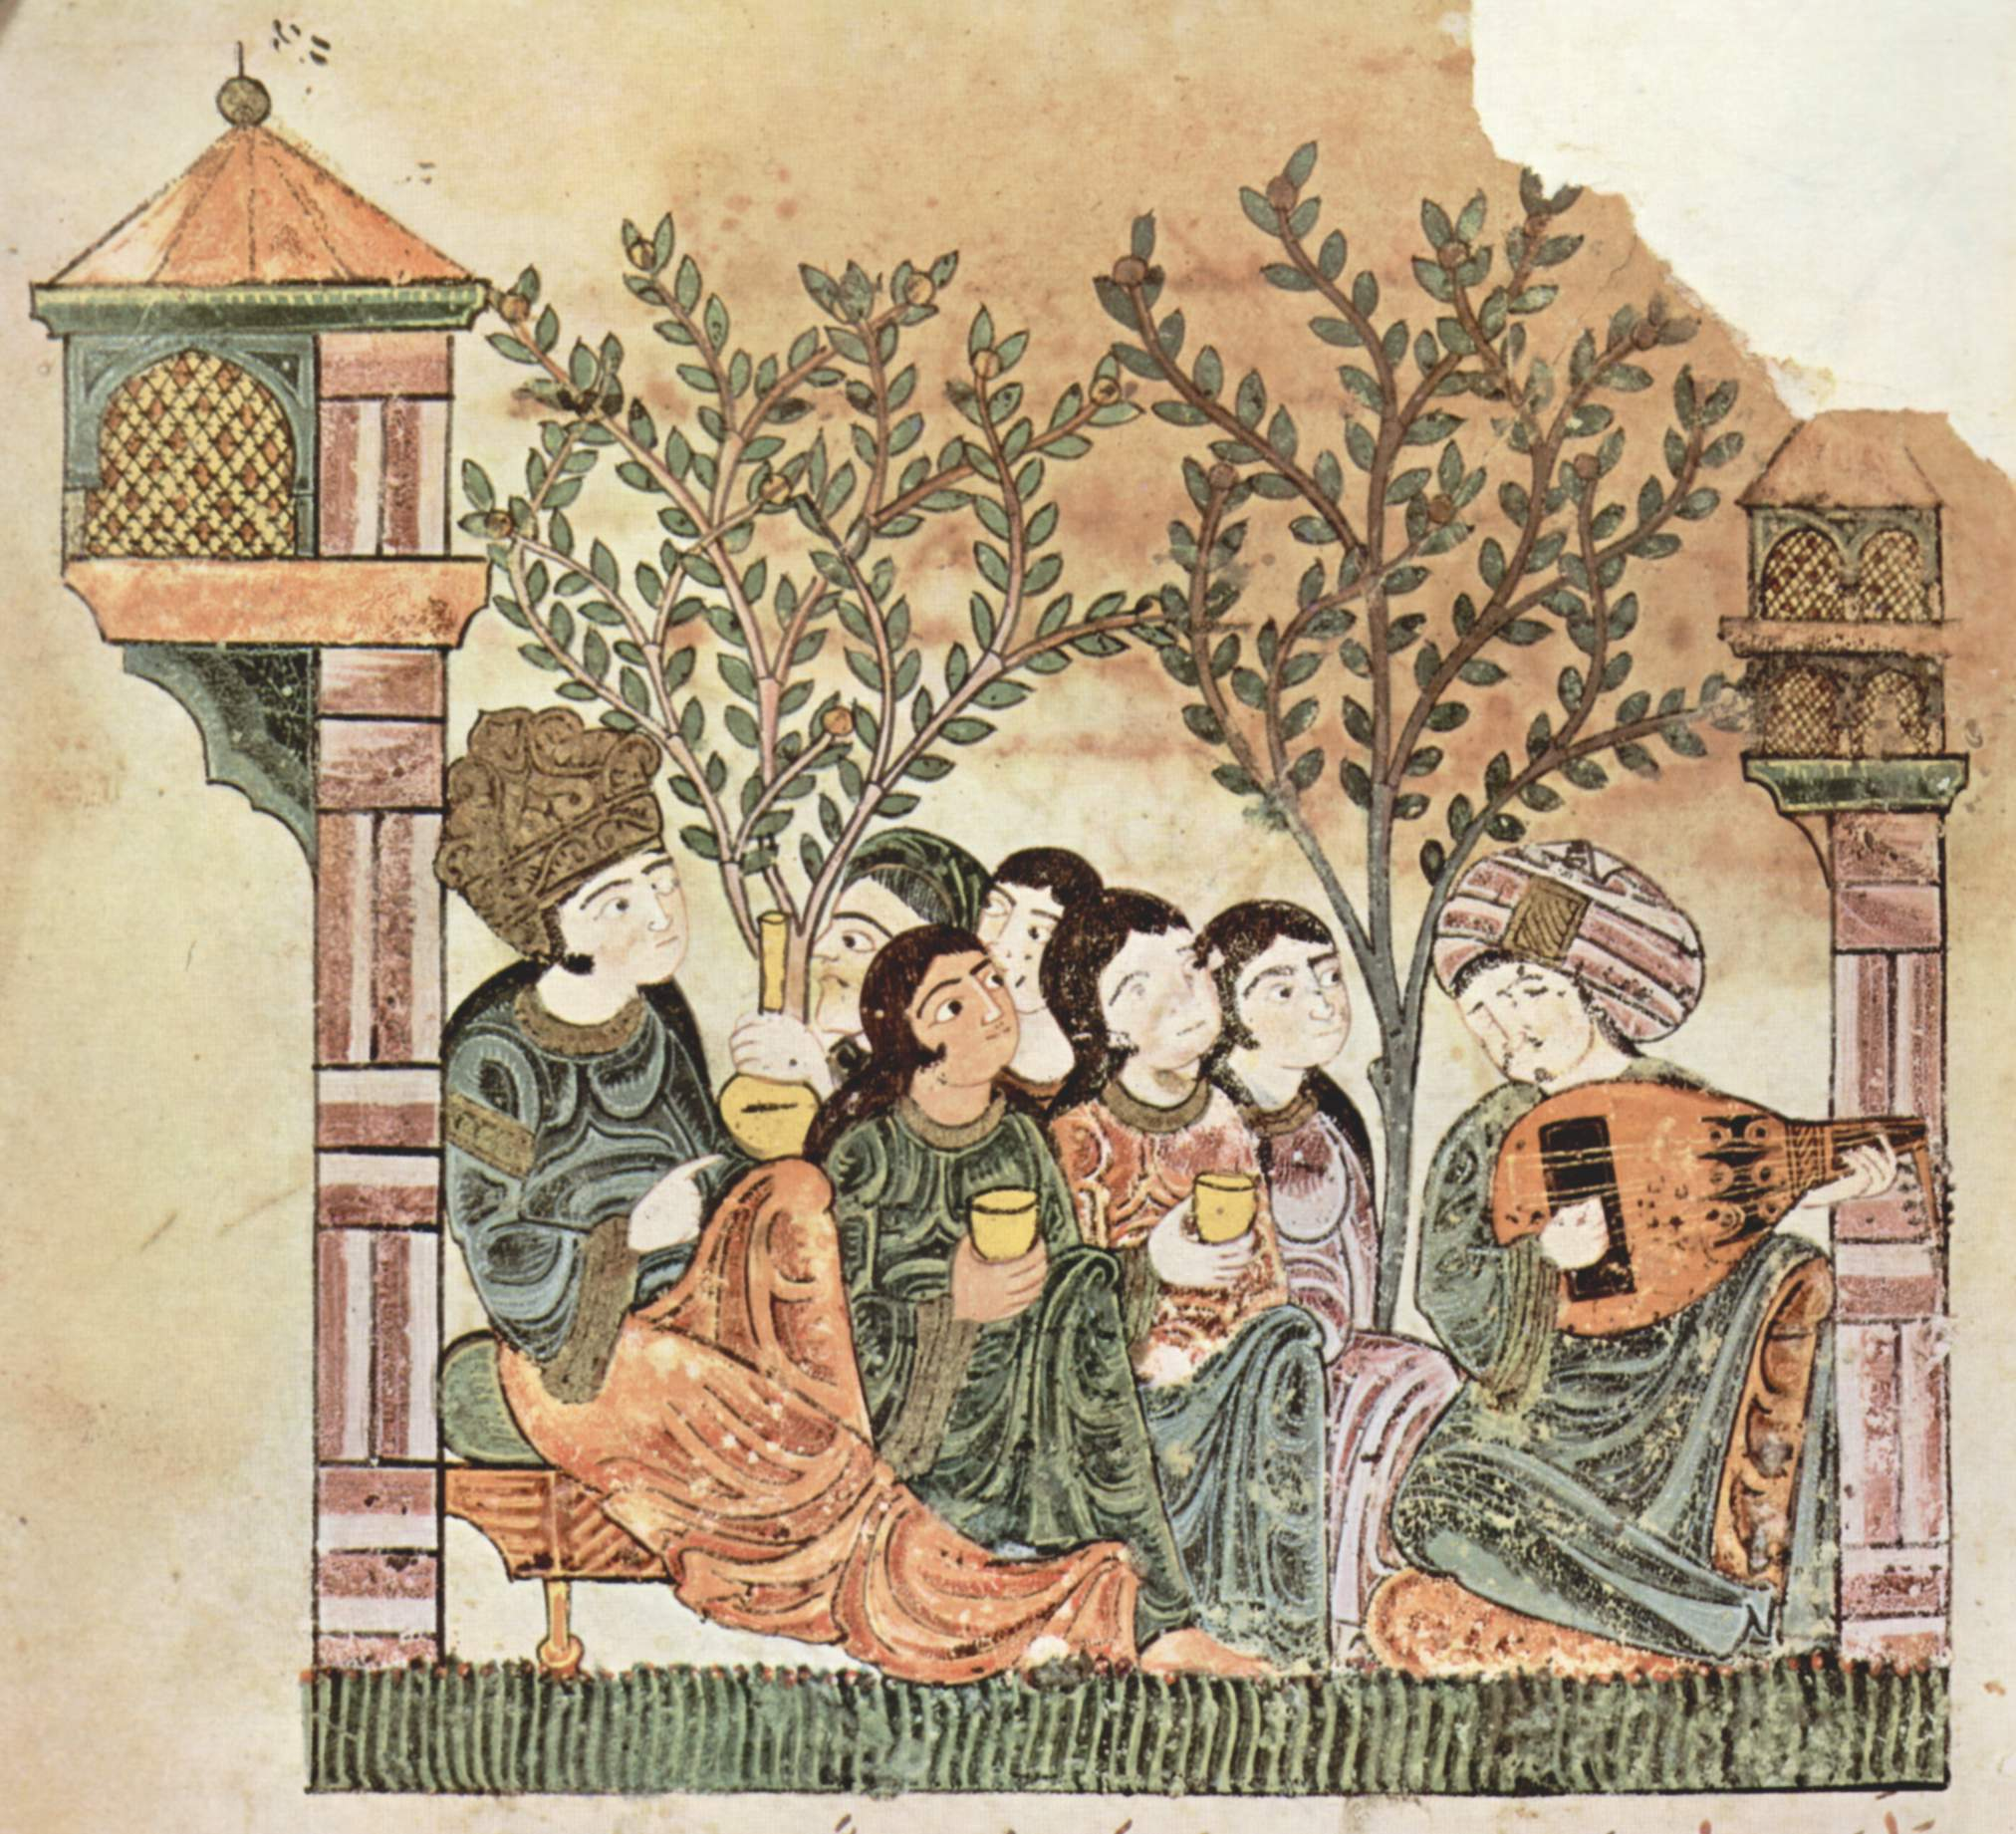 Noblewoman and ladies listen to music in a garden, 13th century